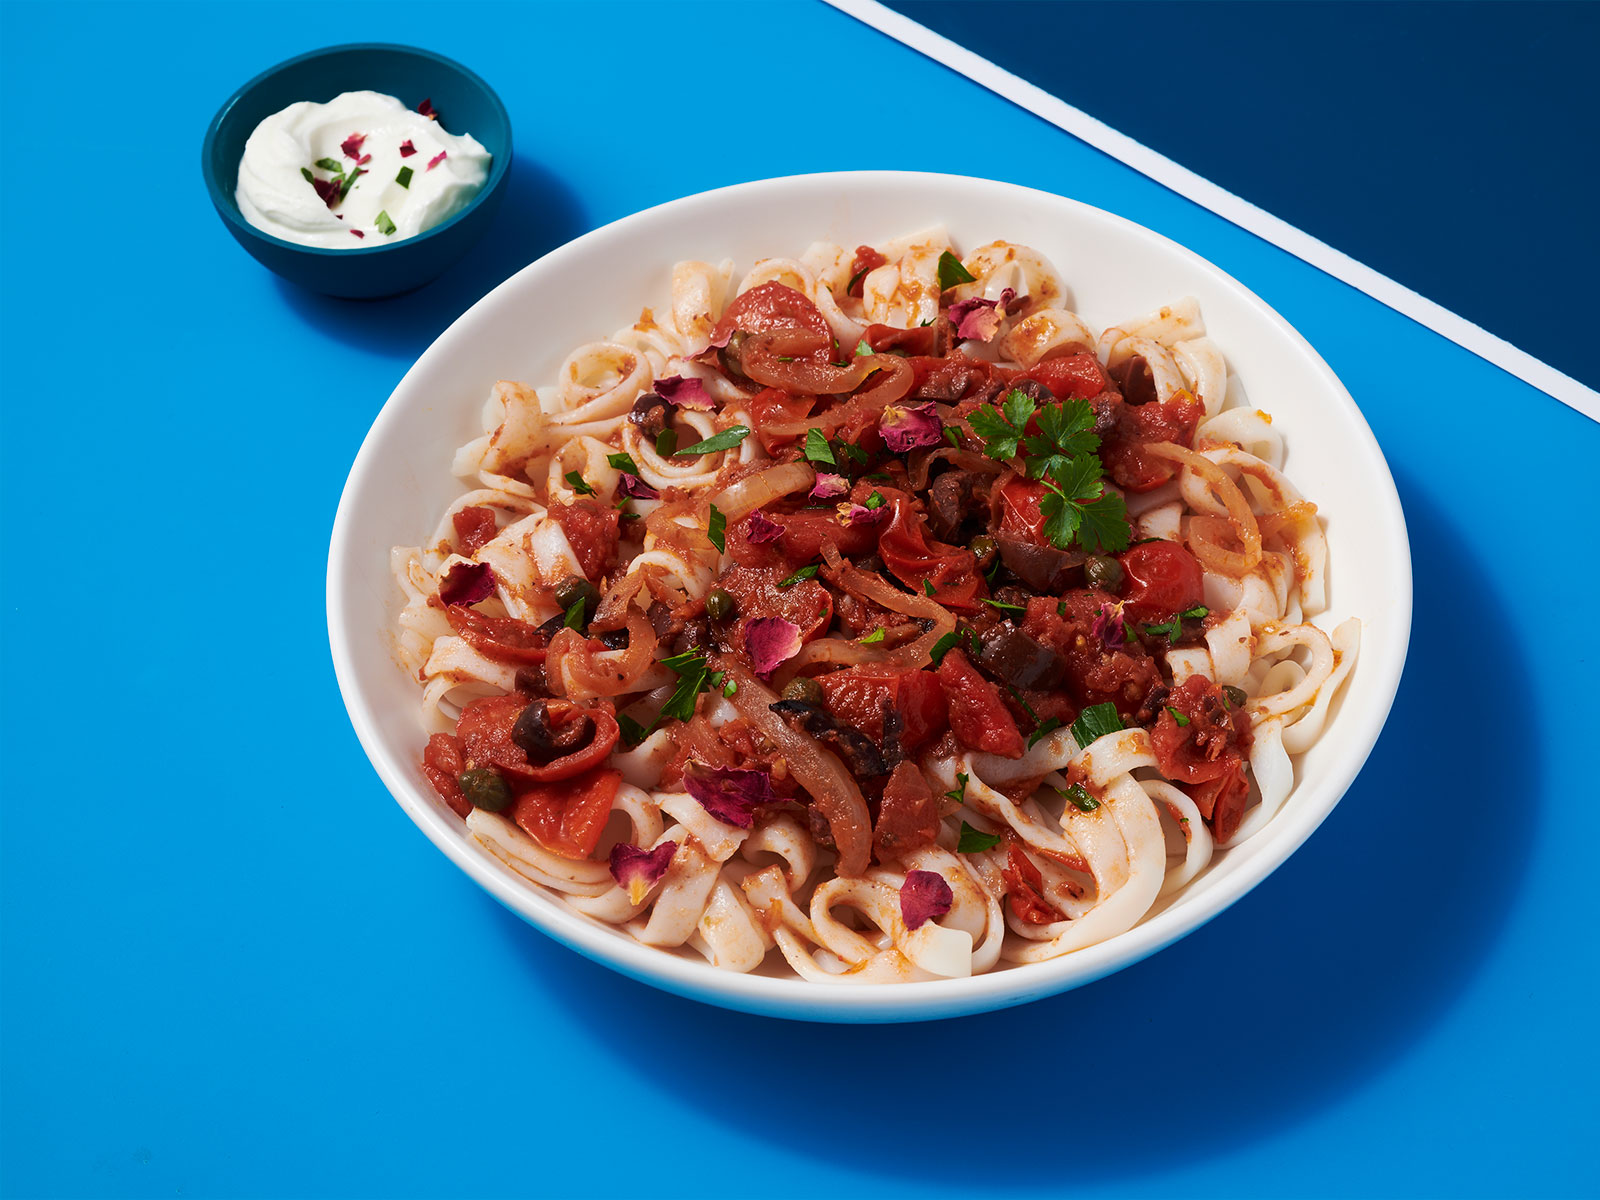 Harissa 10g Protein Noodles™ with Yogurt, Cherry Tomatoes, Olives and Capers